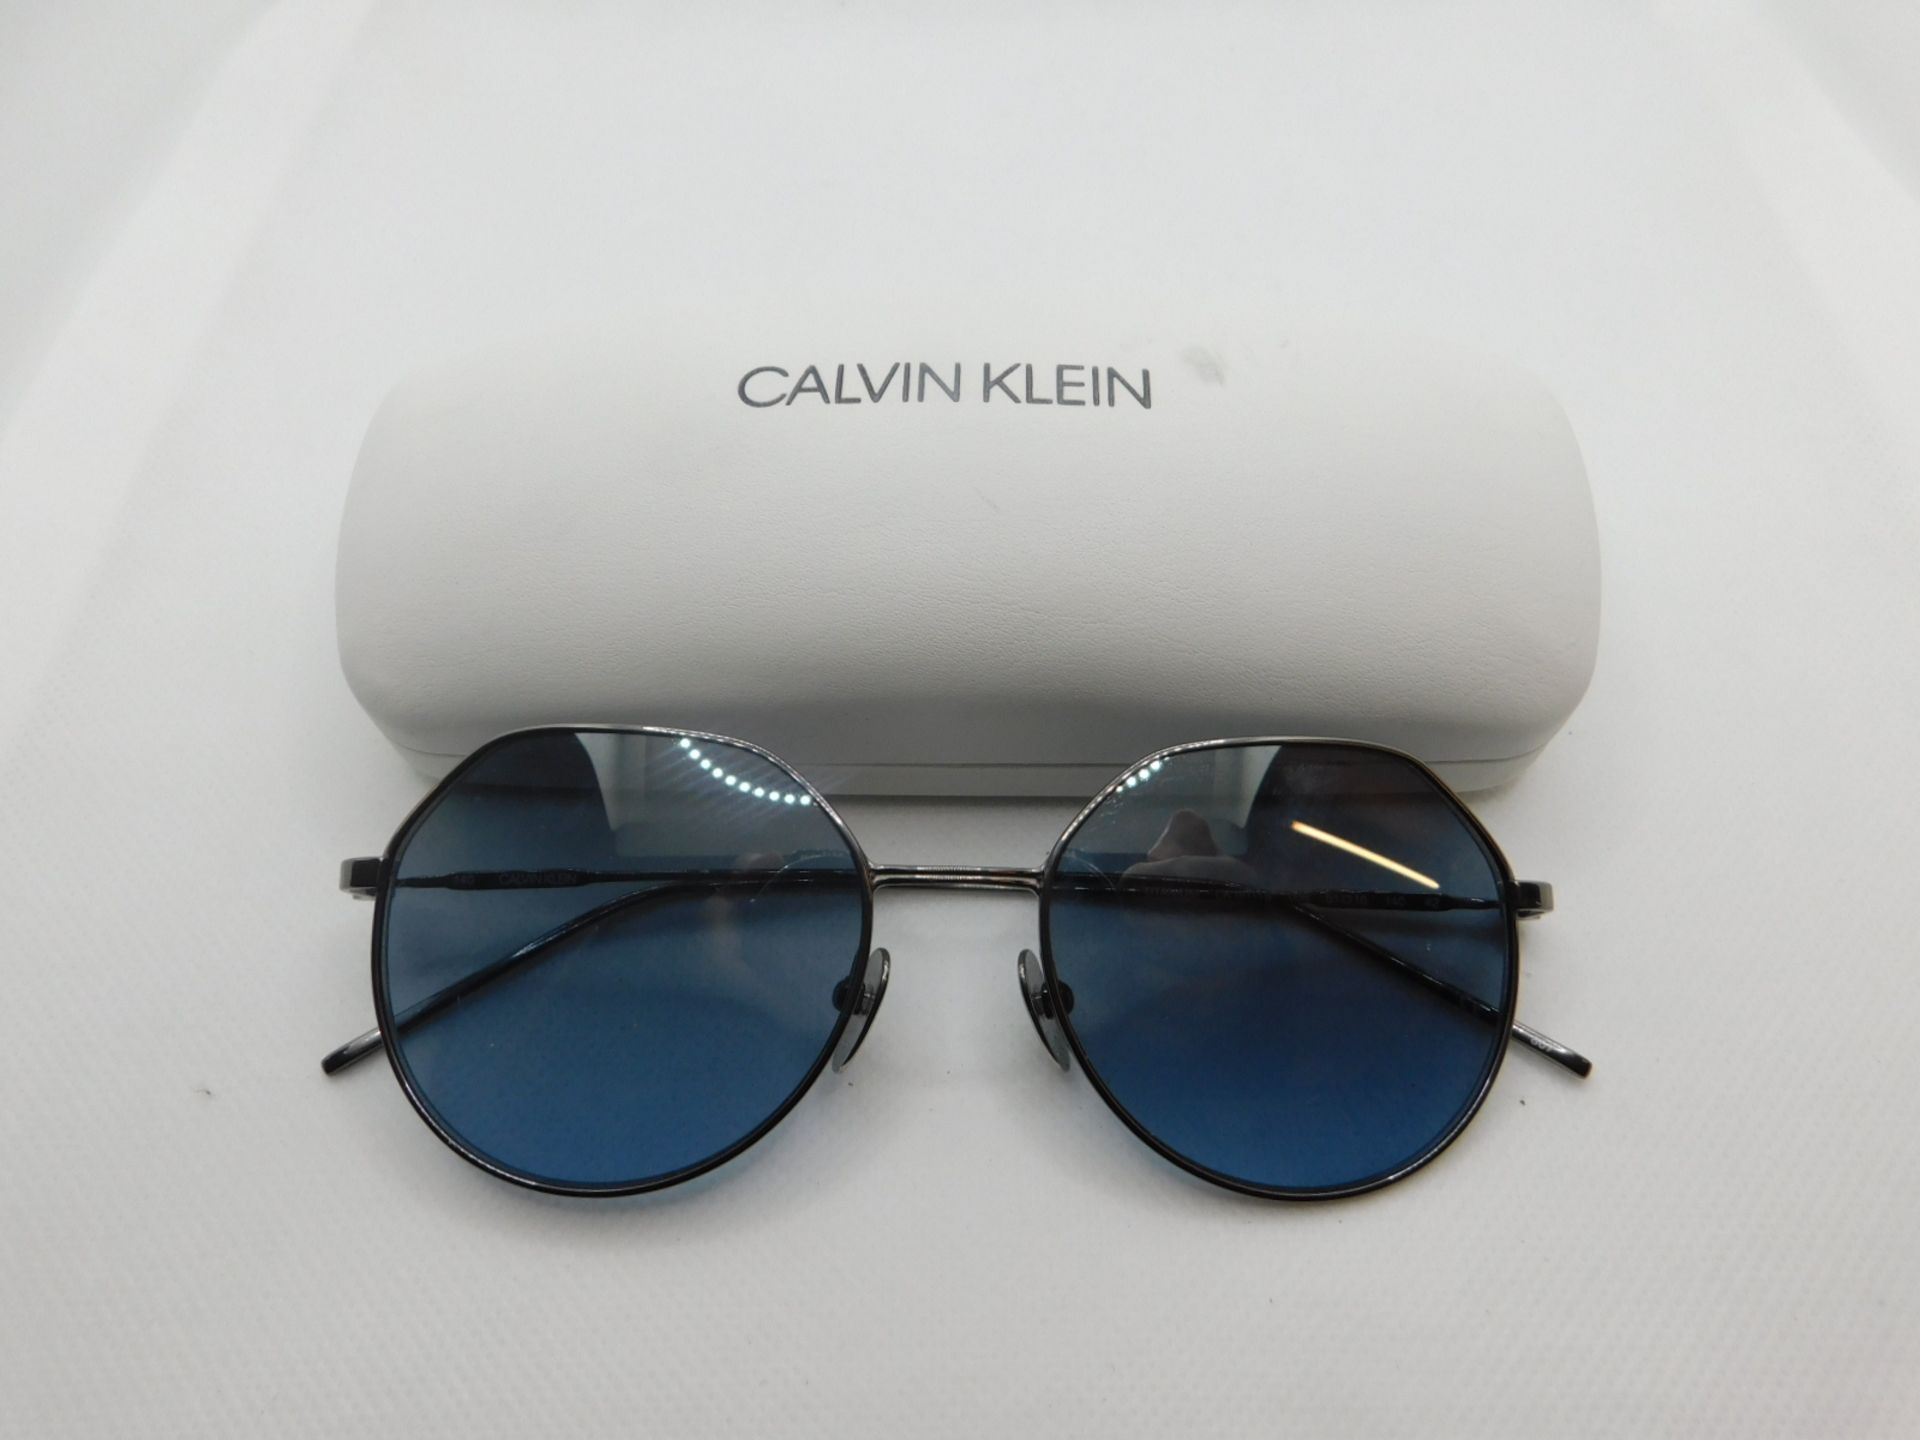 1 PAIR OF CALVIN KLEIN SUNGLASSES WITH CASE MODEL CK18111S RRP £139